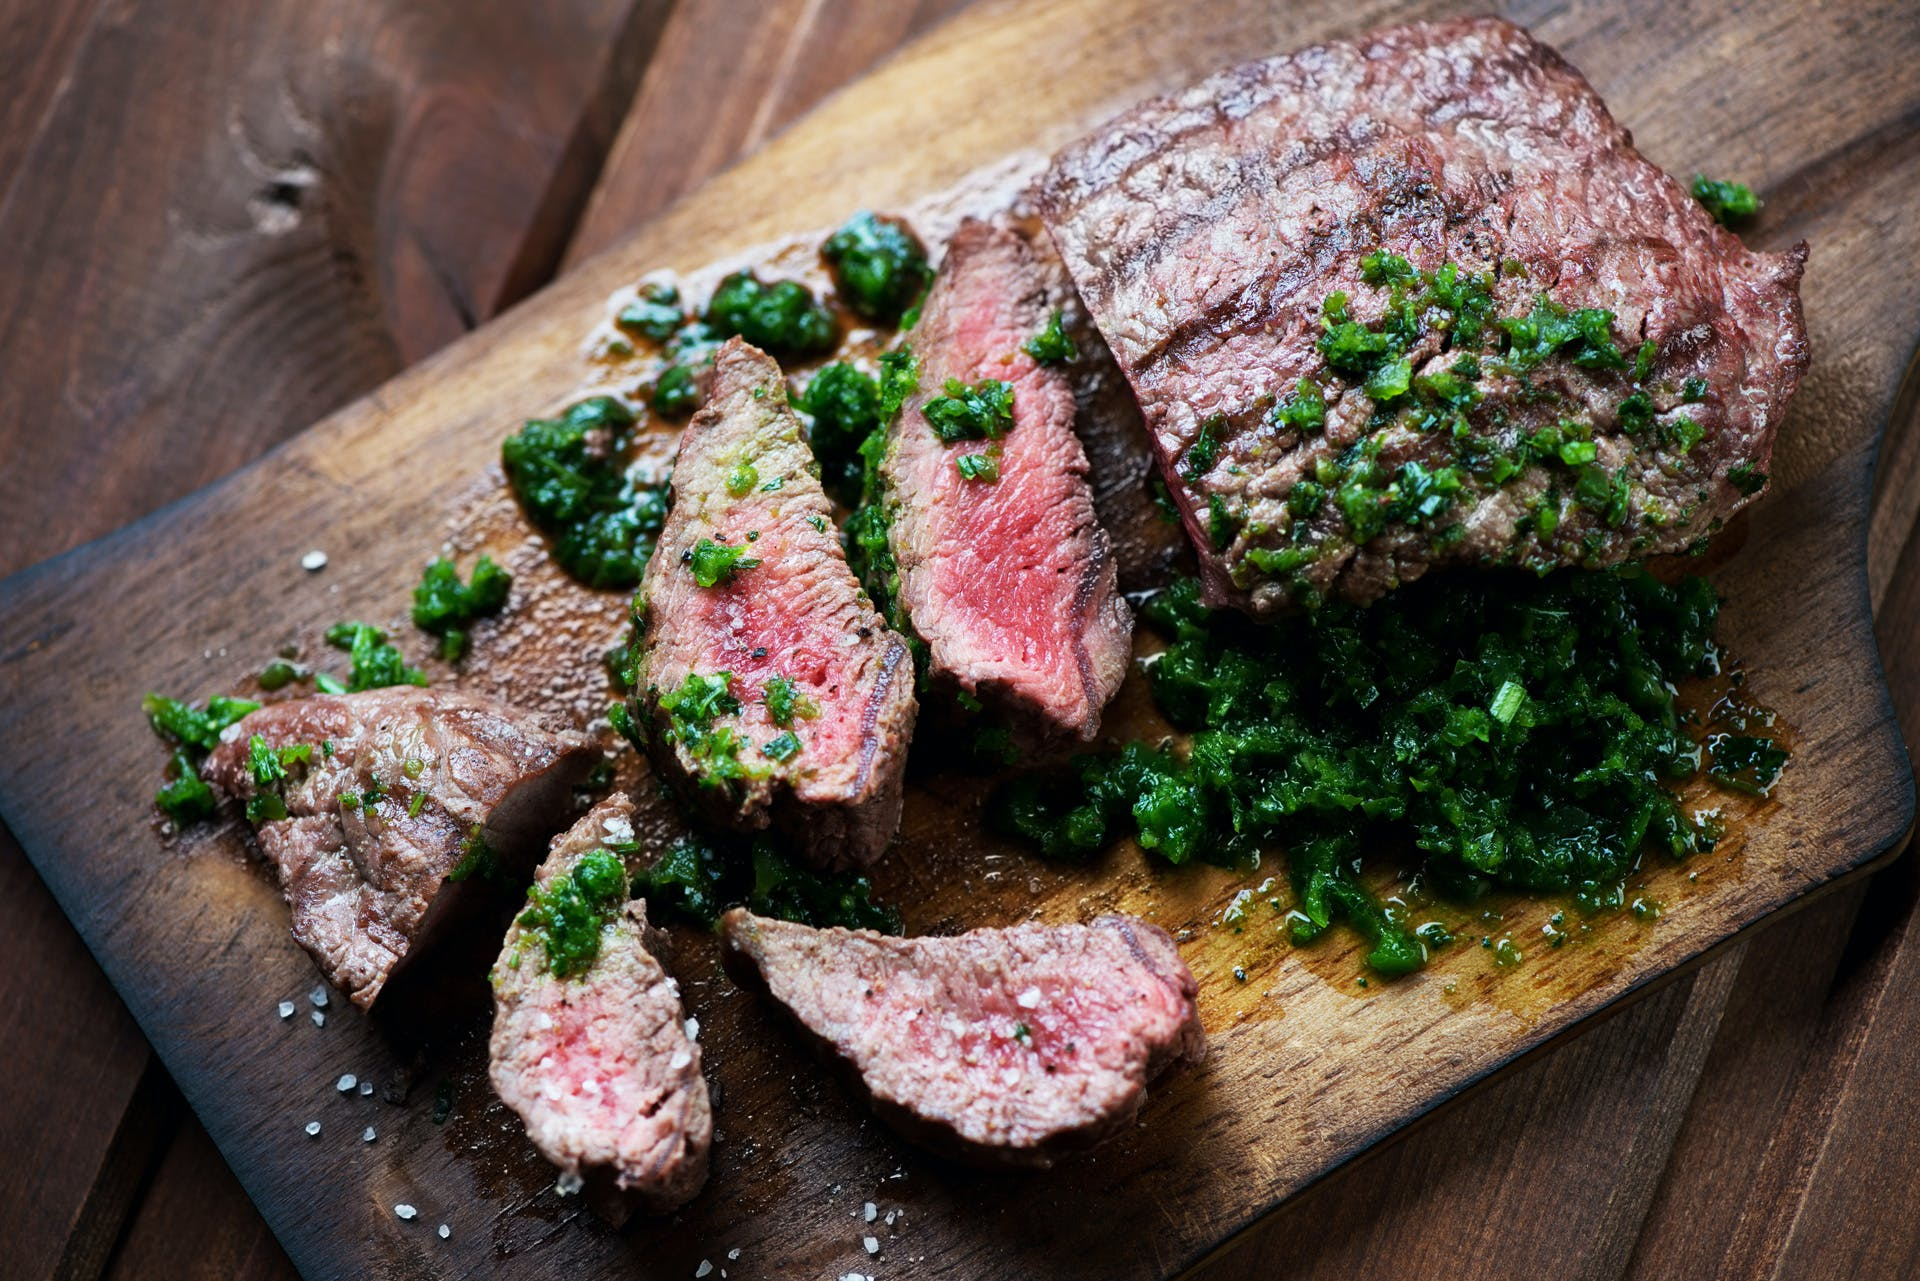 Grilled Flank Steak with Avocado Chimichurri Image